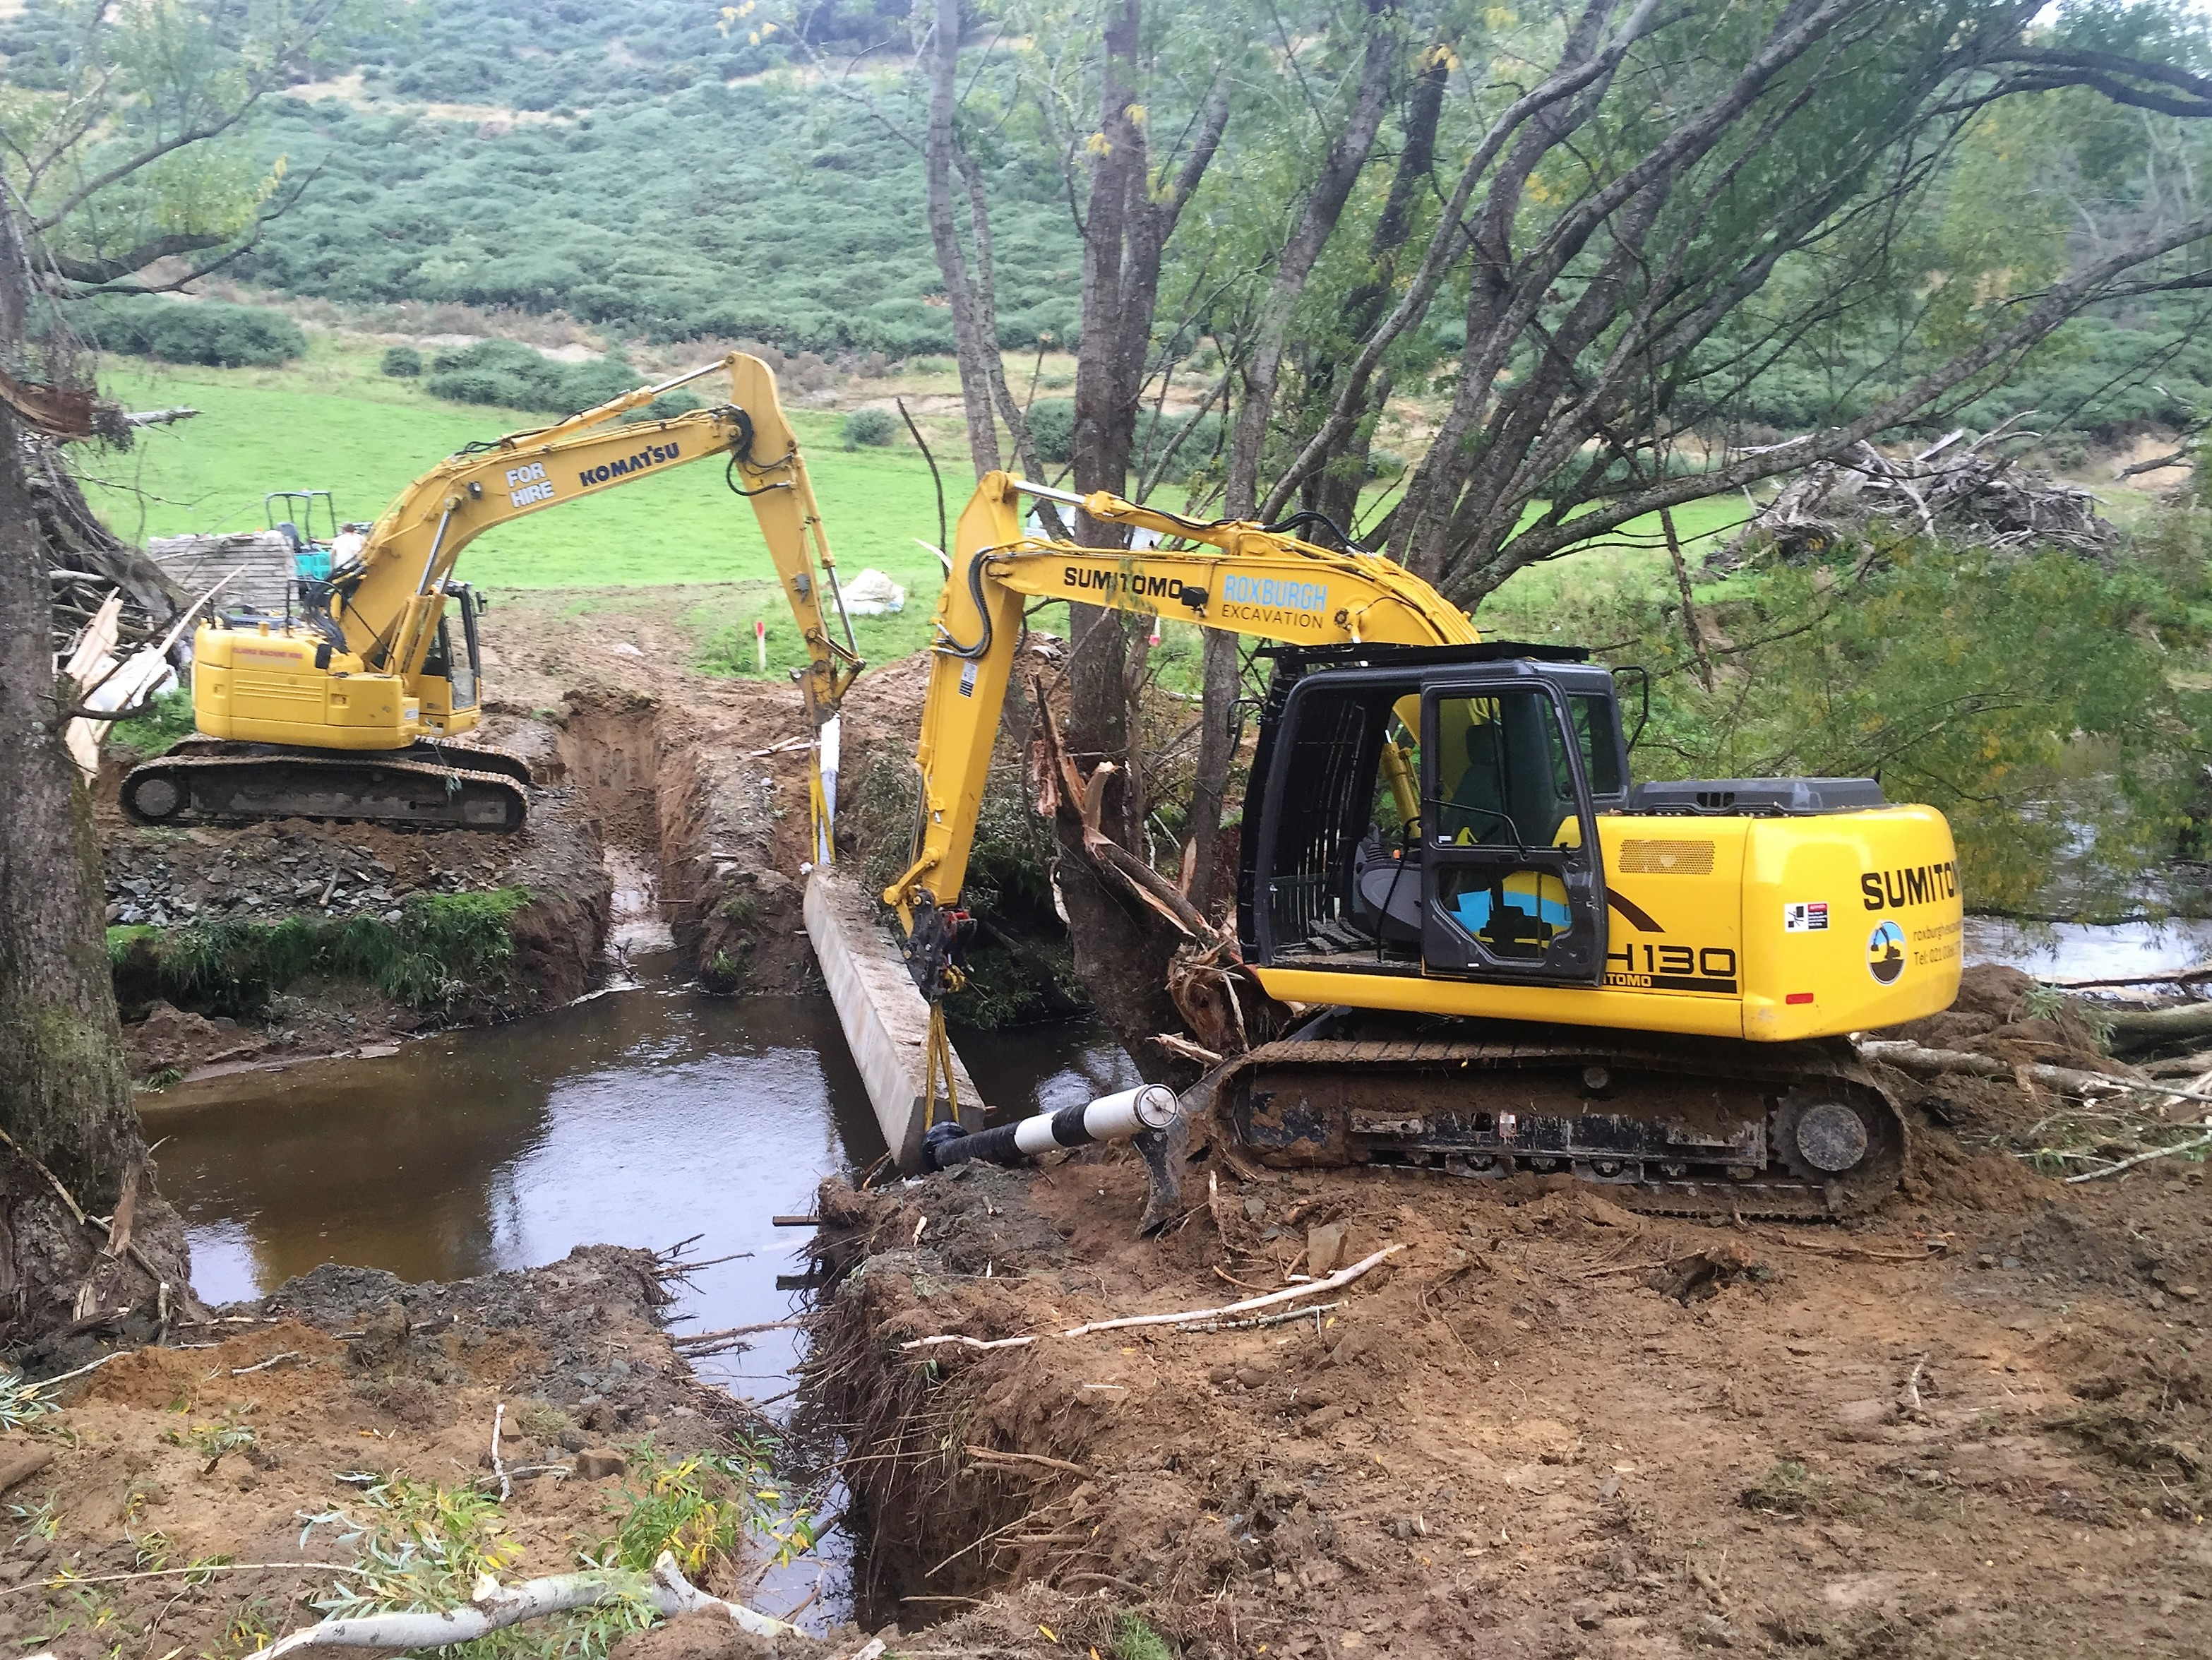 Lifting River crossing pipe into place